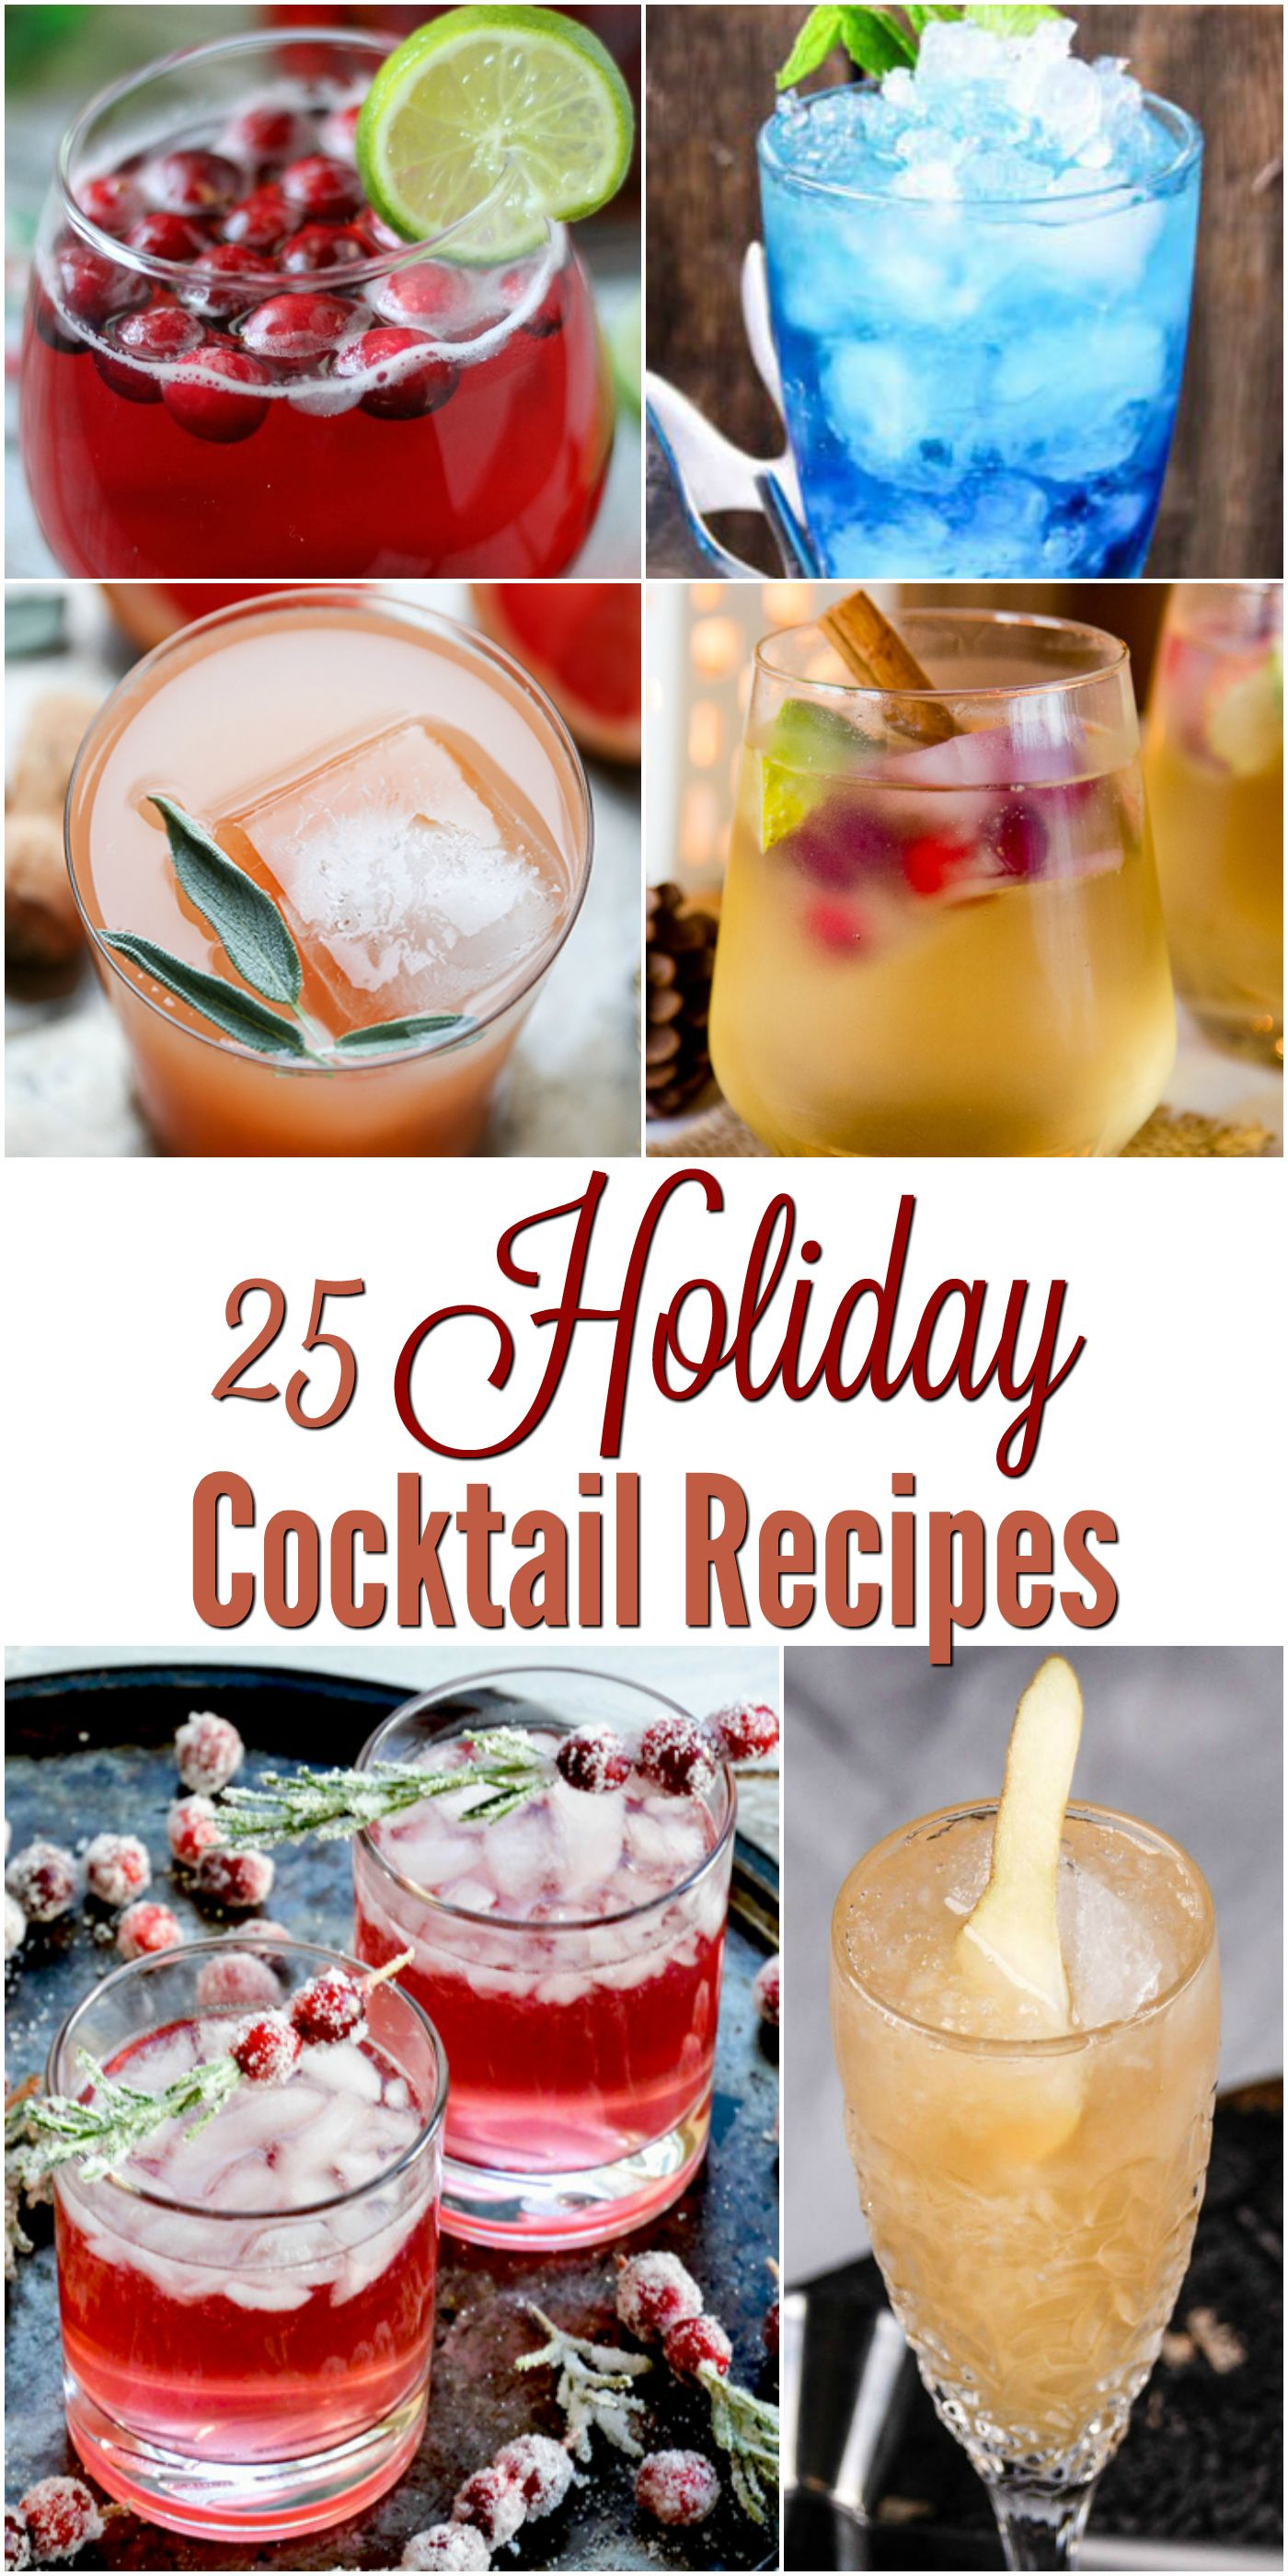 4 Holiday Cocktail Recipes by Food Drink Bloggers To Sip This Season 4 Holiday Cocktail Recipes by Food Drink Bloggers To Sip This Season new images